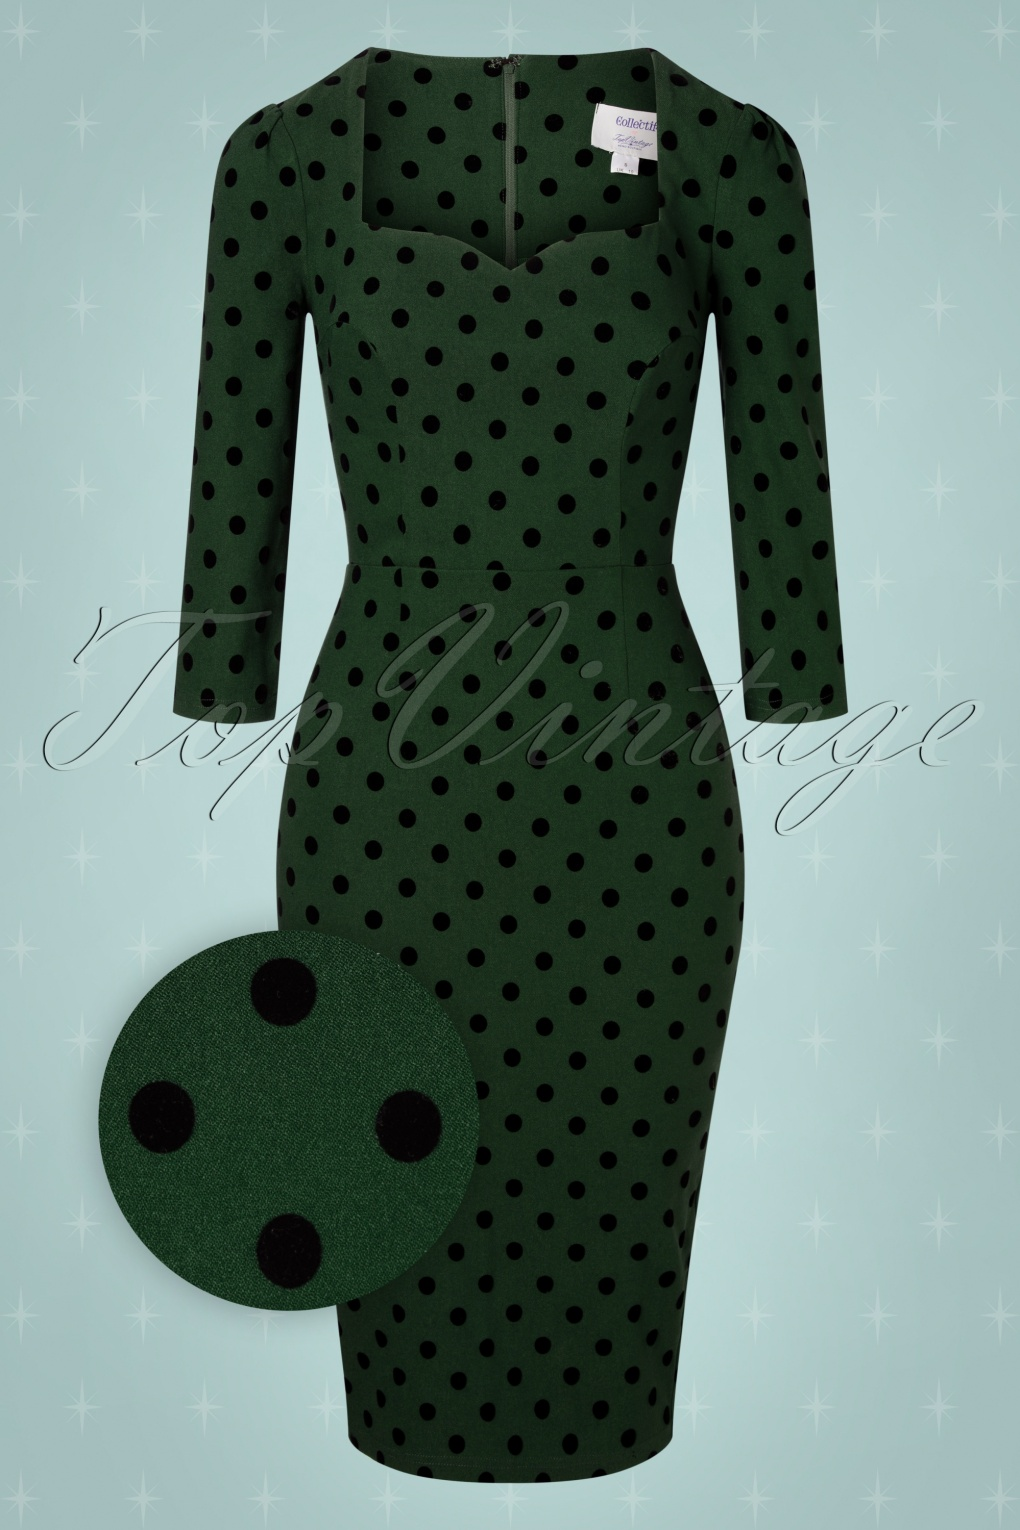 Vintage Style Dresses | Vintage Inspired Dresses 50s Vanessa Polka Flock Pencil Dress in Green £53.71 AT vintagedancer.com